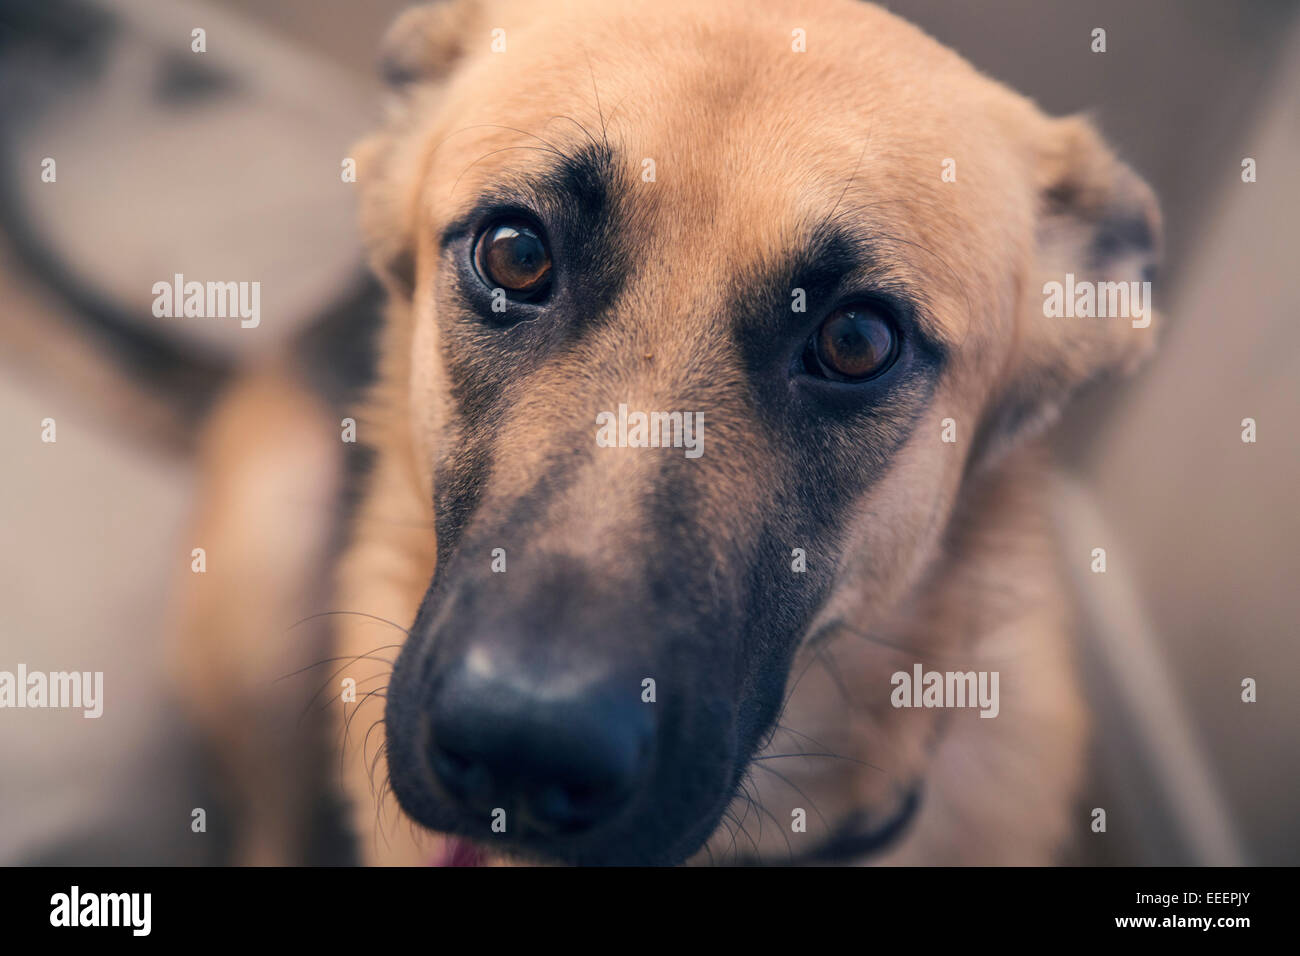 German Shepherd Giving The Puppy Eyes Stock Photo 77771763 Alamy